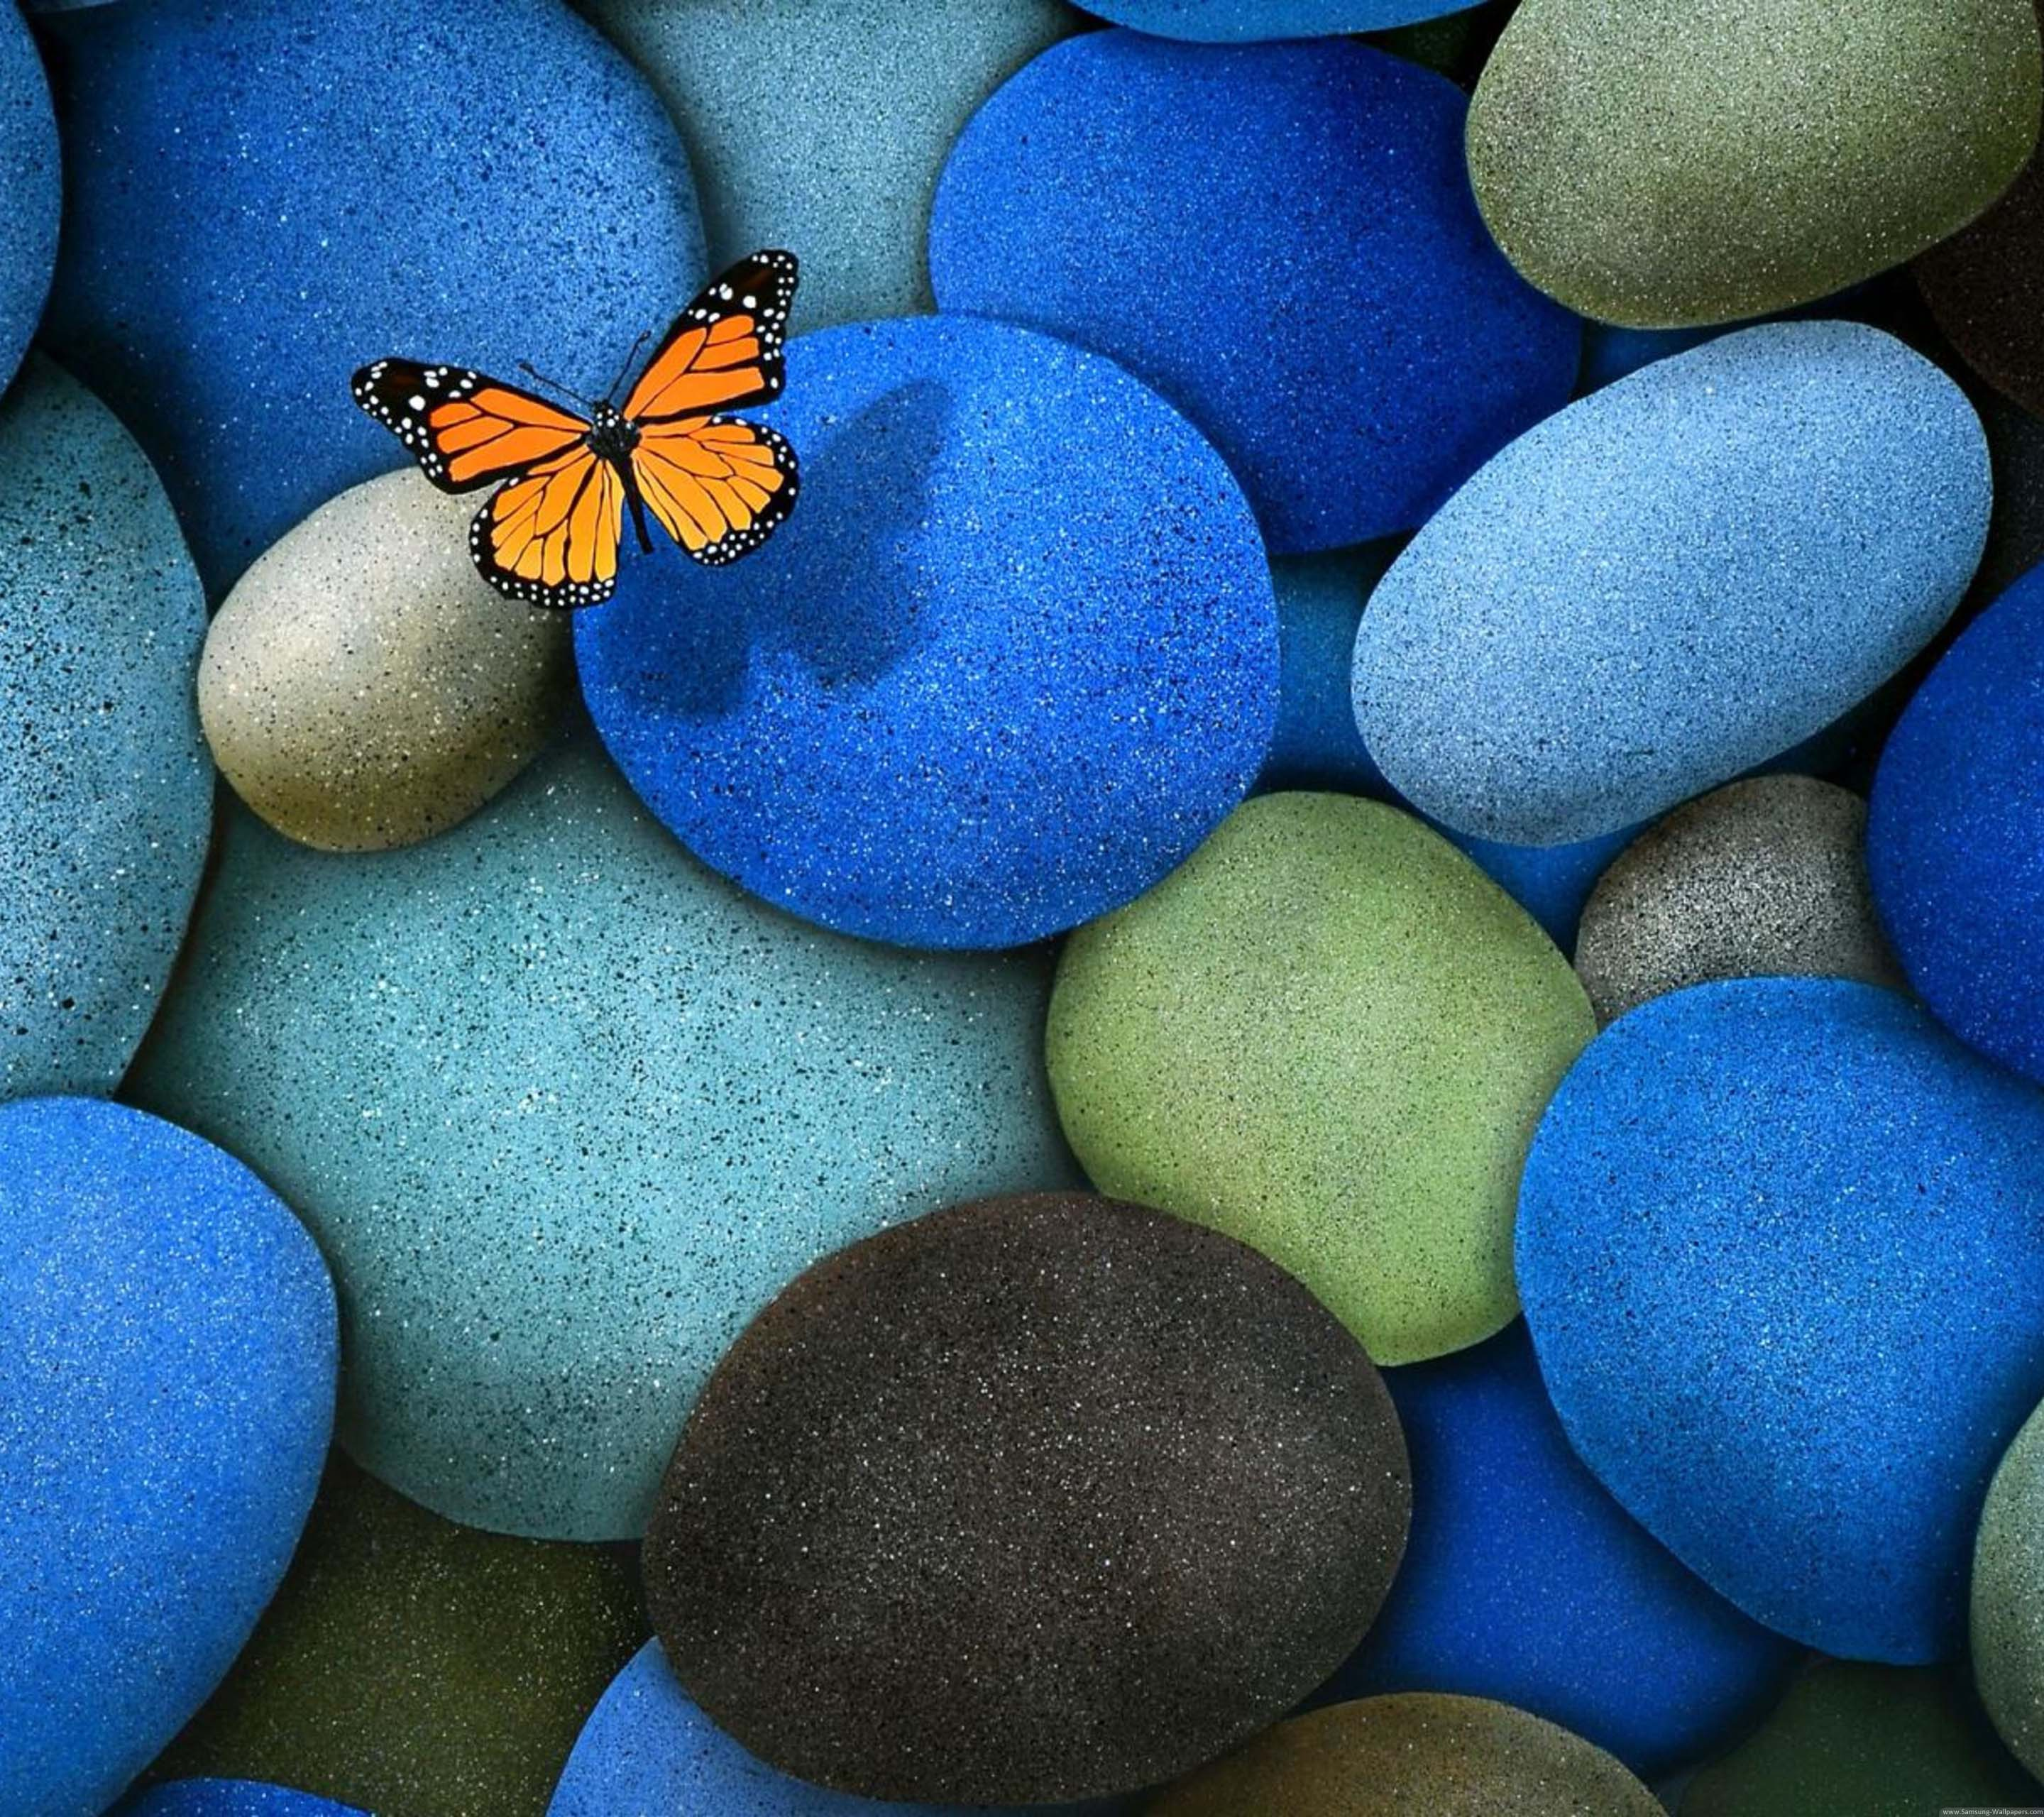 Rocks Butterfly Stock Samsung Galaxy S7 Edge Wallpaper Samsung Galaxy S7 Edge Wallpaper Download 290134 Hd Wallpaper Backgrounds Download